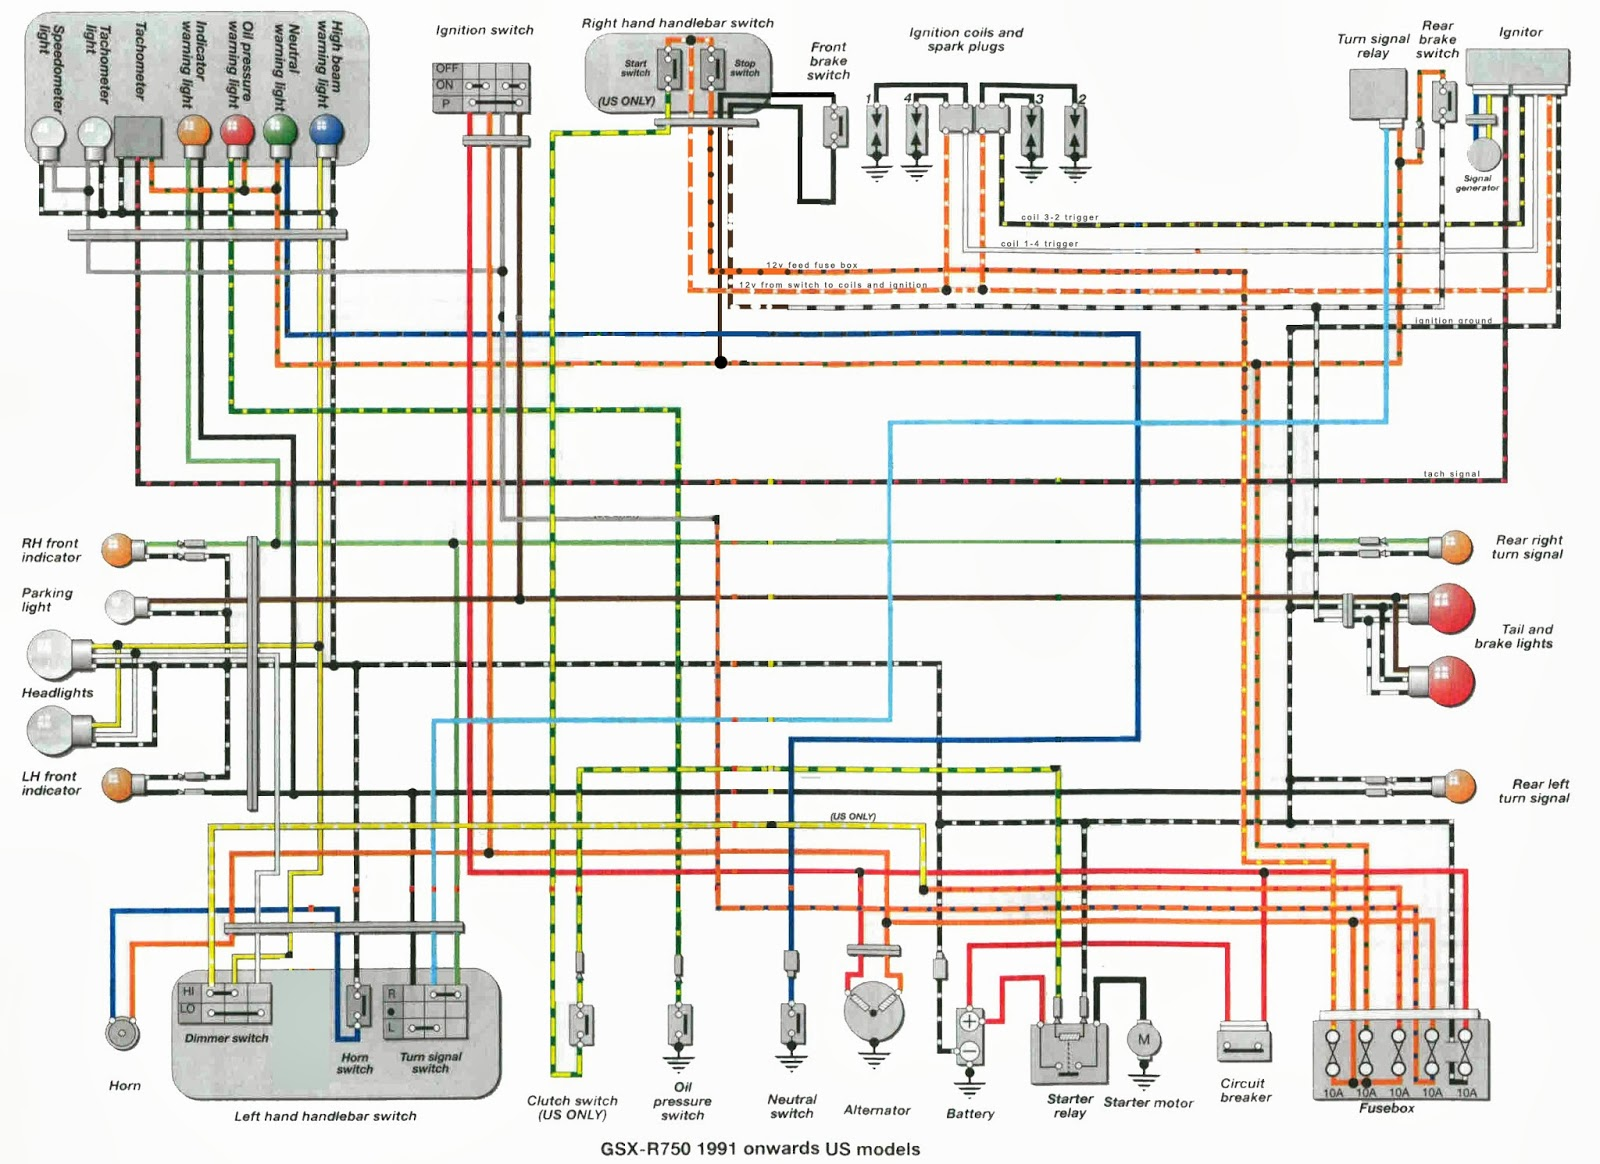 tl 1000 r wiring diagram 2006 gsxr 1000 wiring diagram 2006 wiring diagrams online